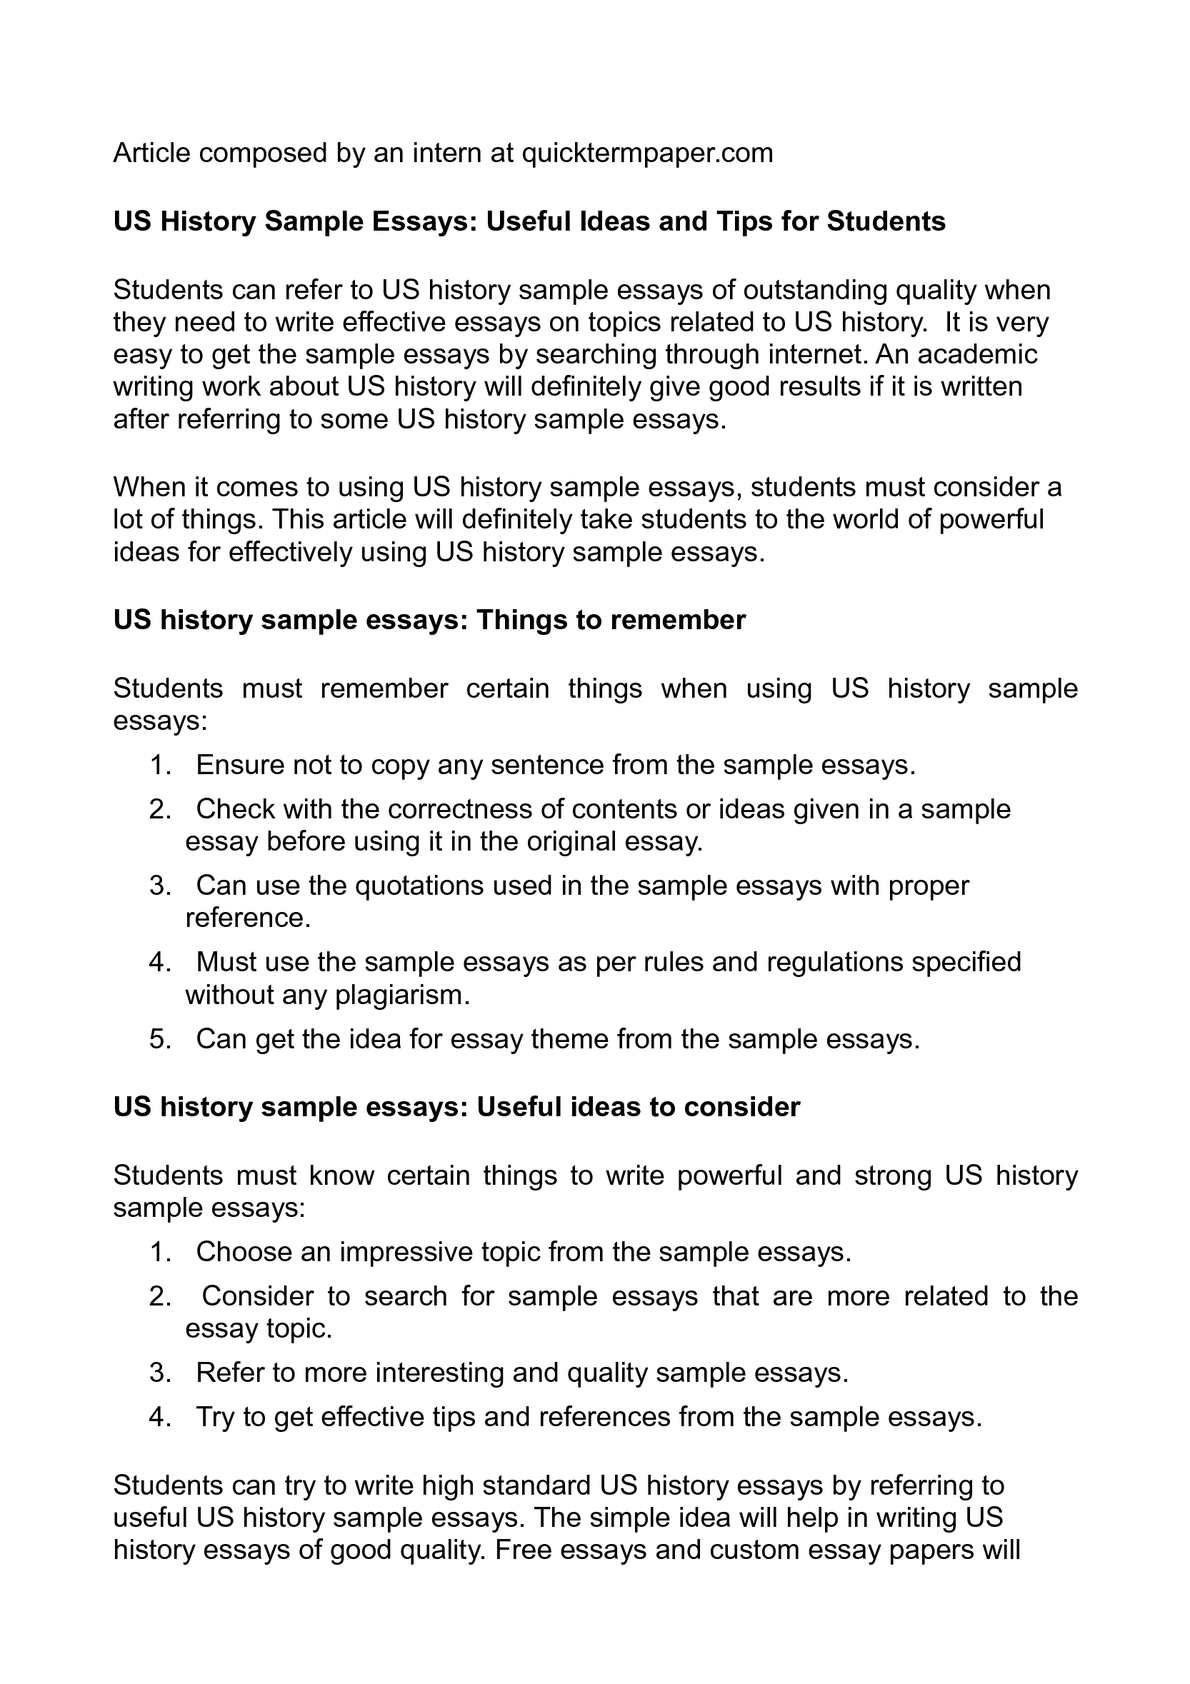 Sample history essay